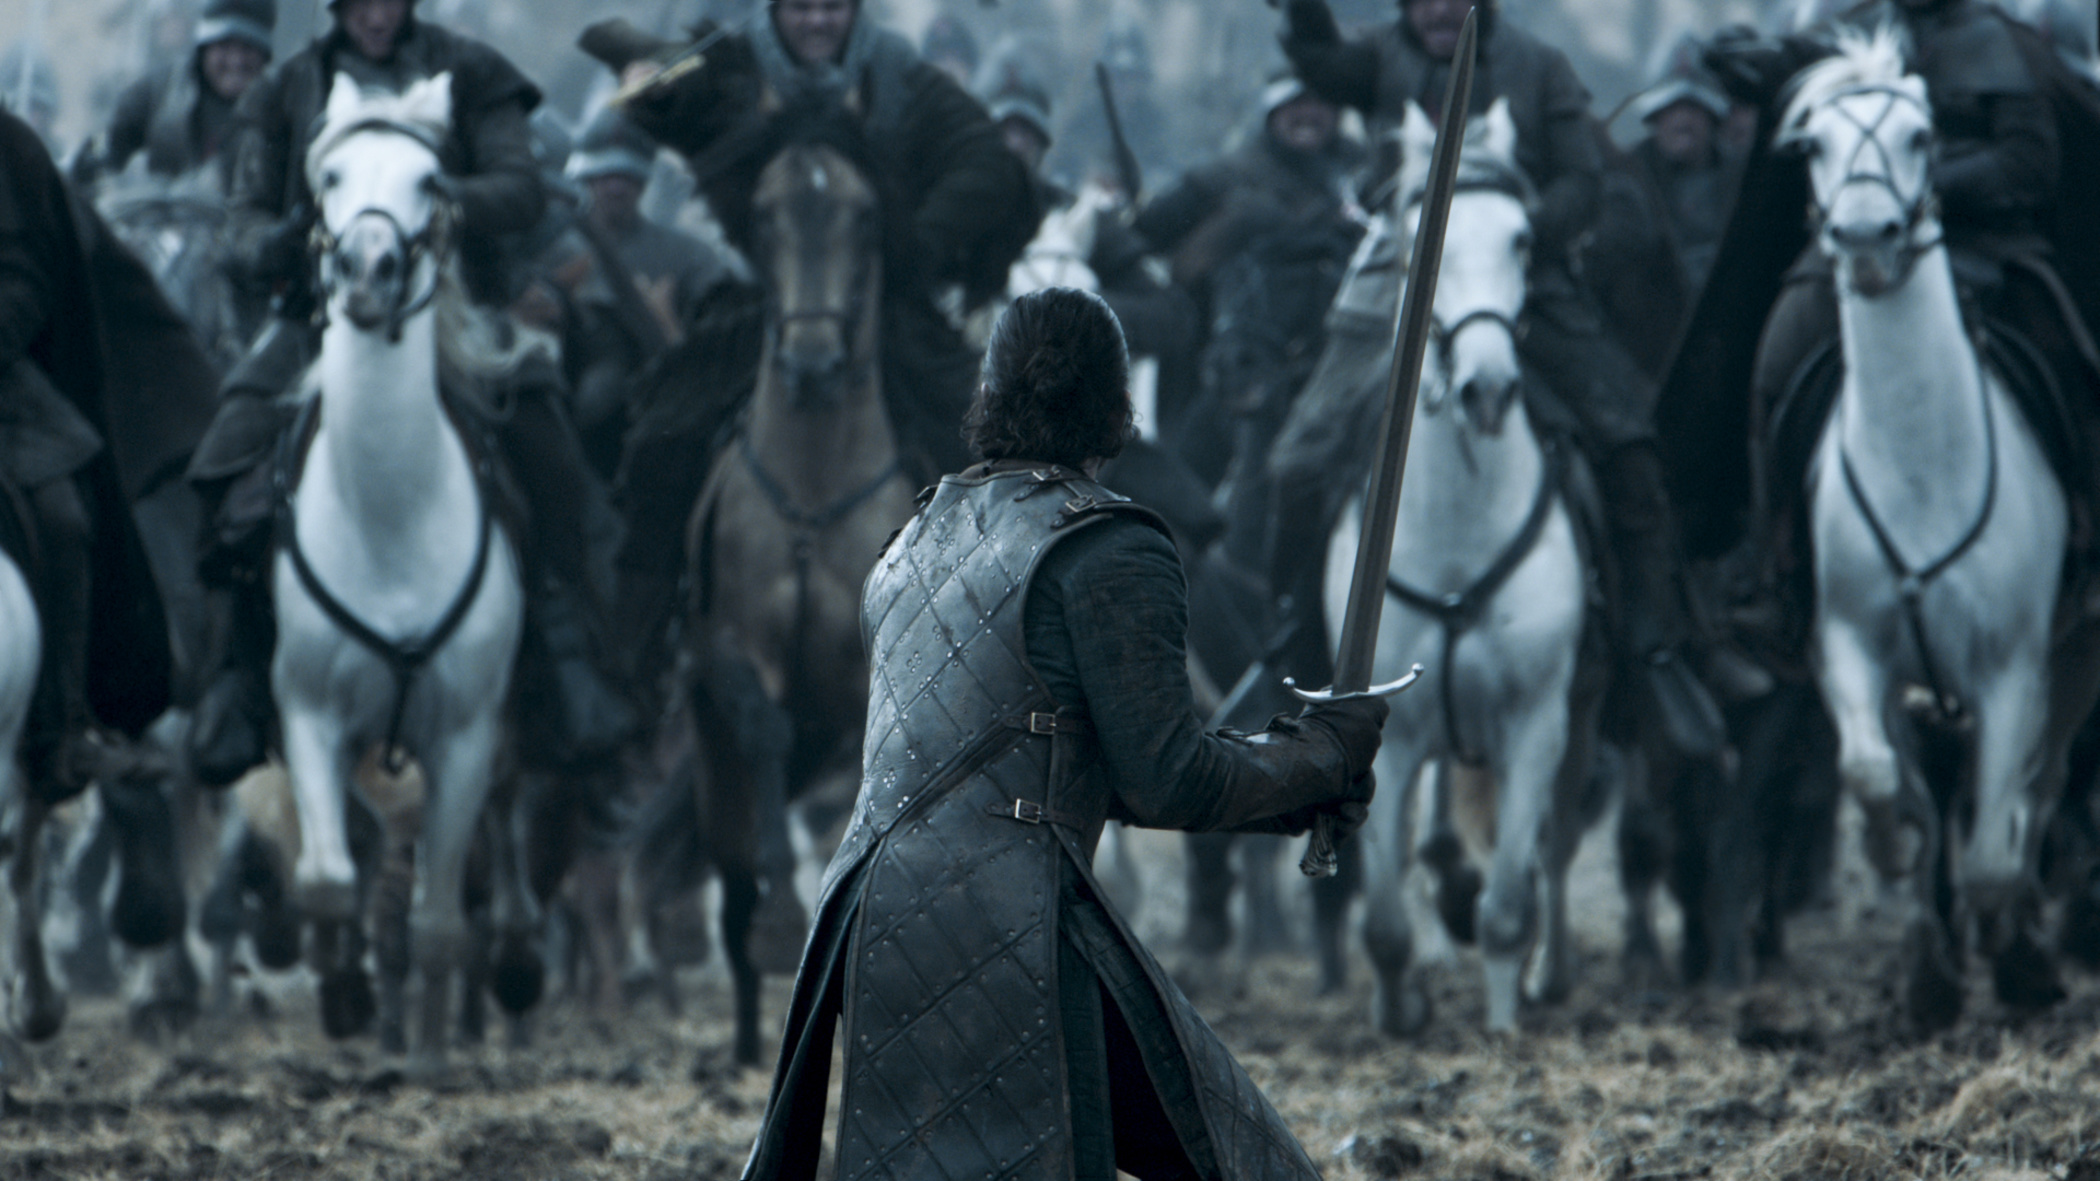 Kit Harington as Jon Snow in 'Game of Thrones' Season 6, Episode 9